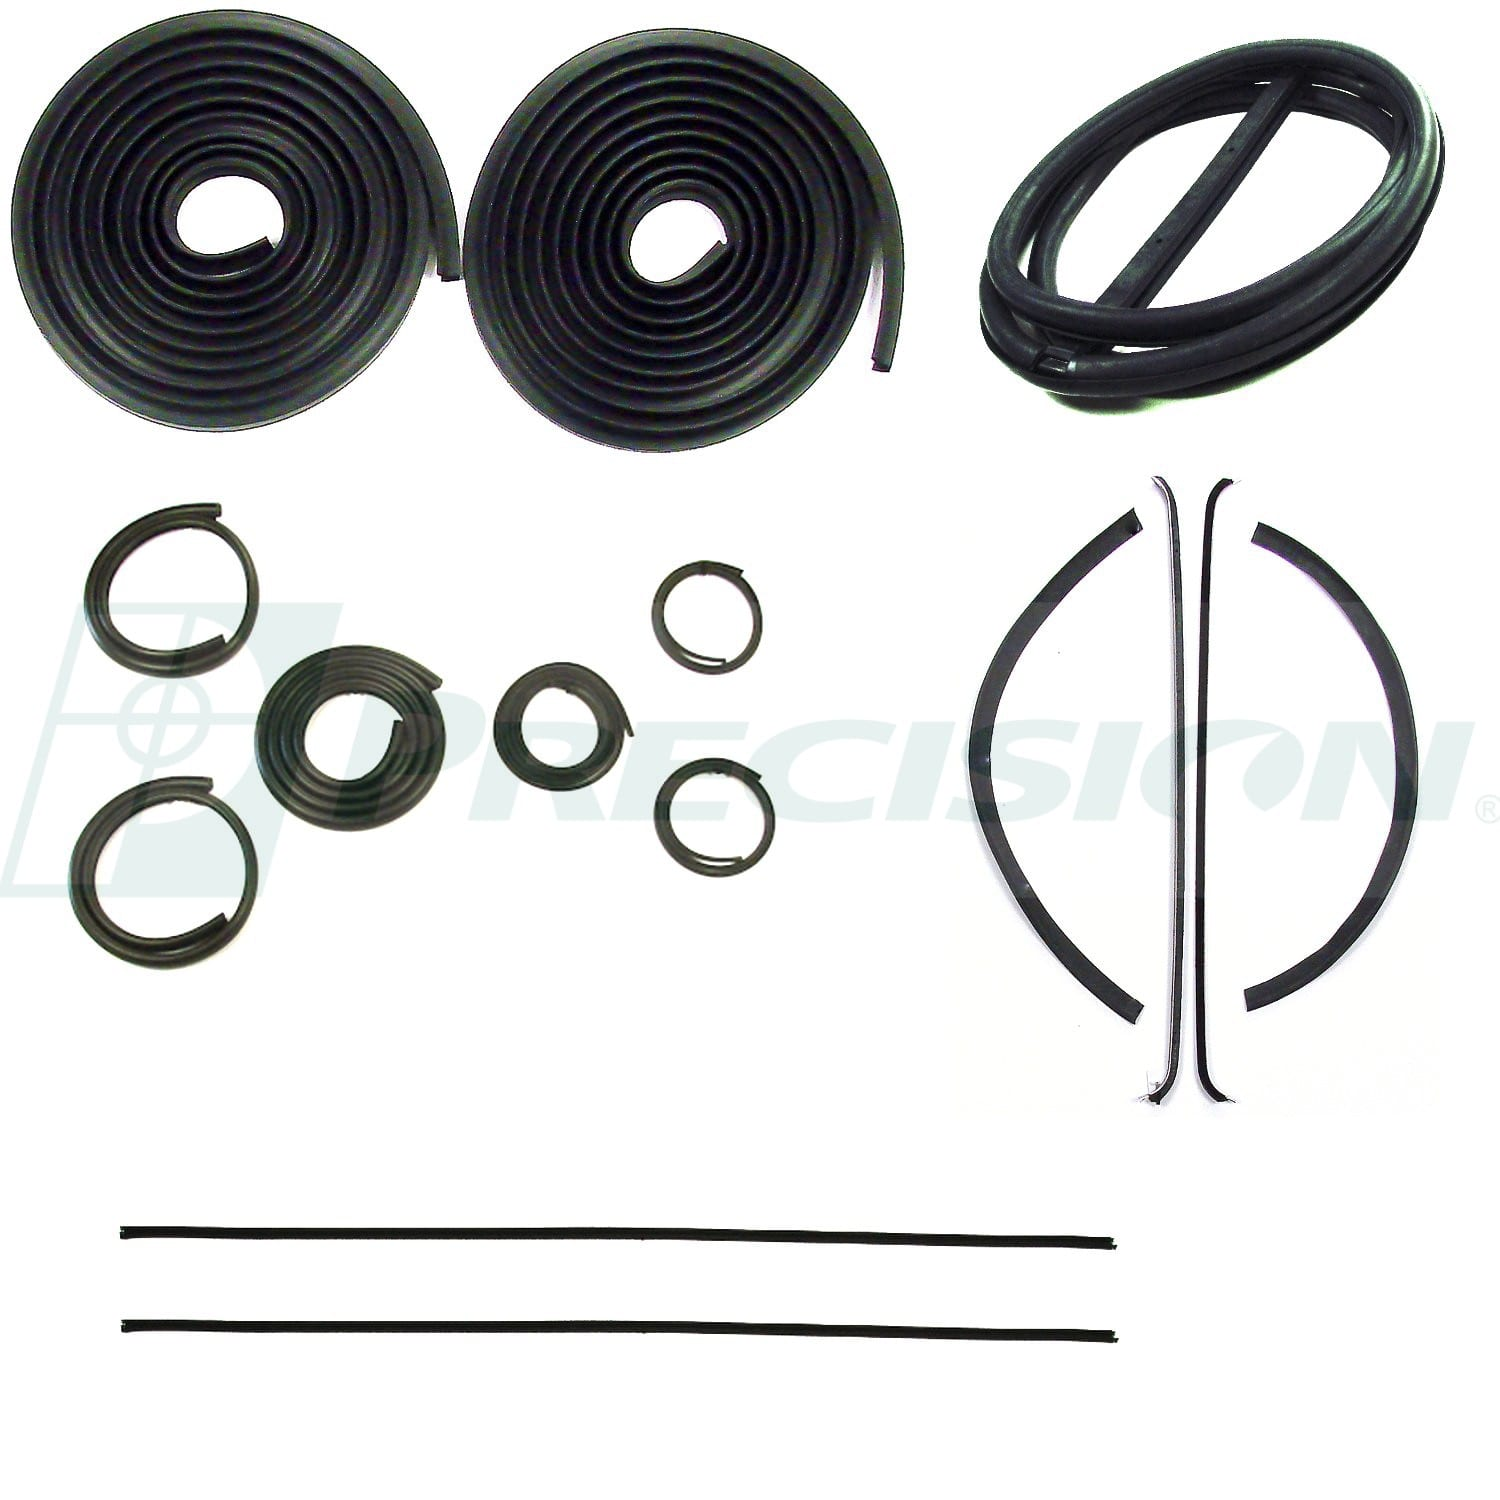 1947-1950 GM Pickup Weatherstrip Kit with Windshield Trim Groove